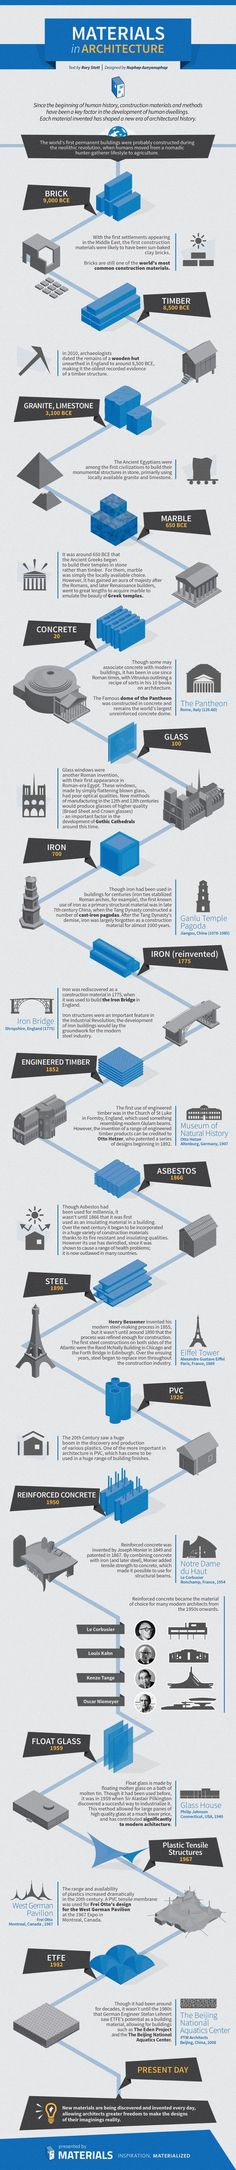 INFOGRAPHIC: Materials in Architecture (A History) | ArchDaily. Great for teaching with Dreaming Up!